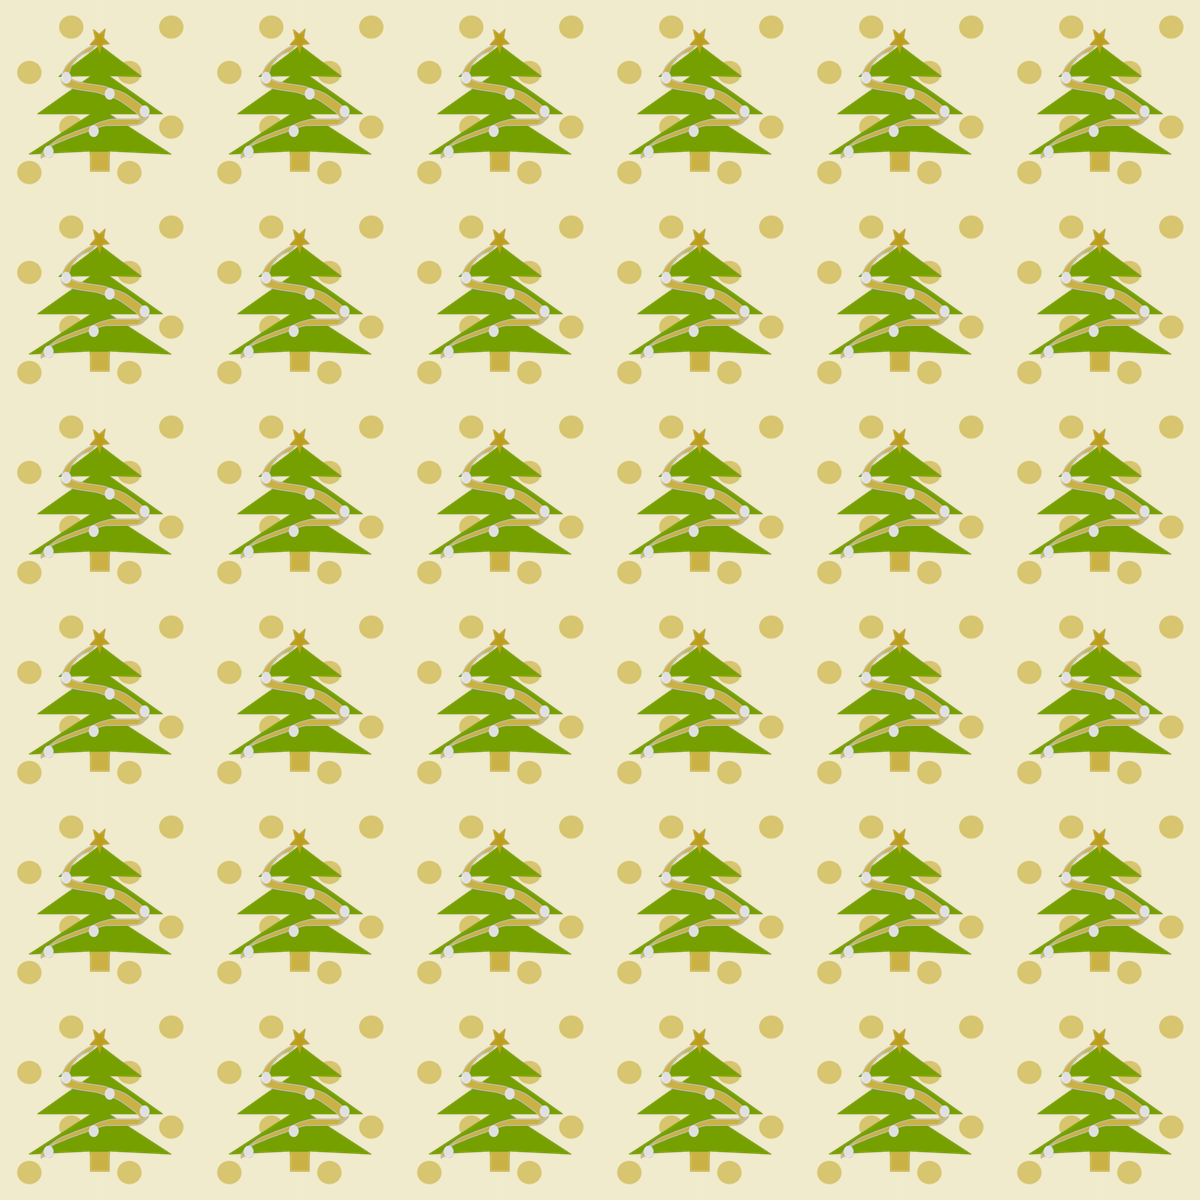 Christmas tree decorations blue and green - Free Digital Christmas Tree Scrapbooking Papers Ausdruckbares